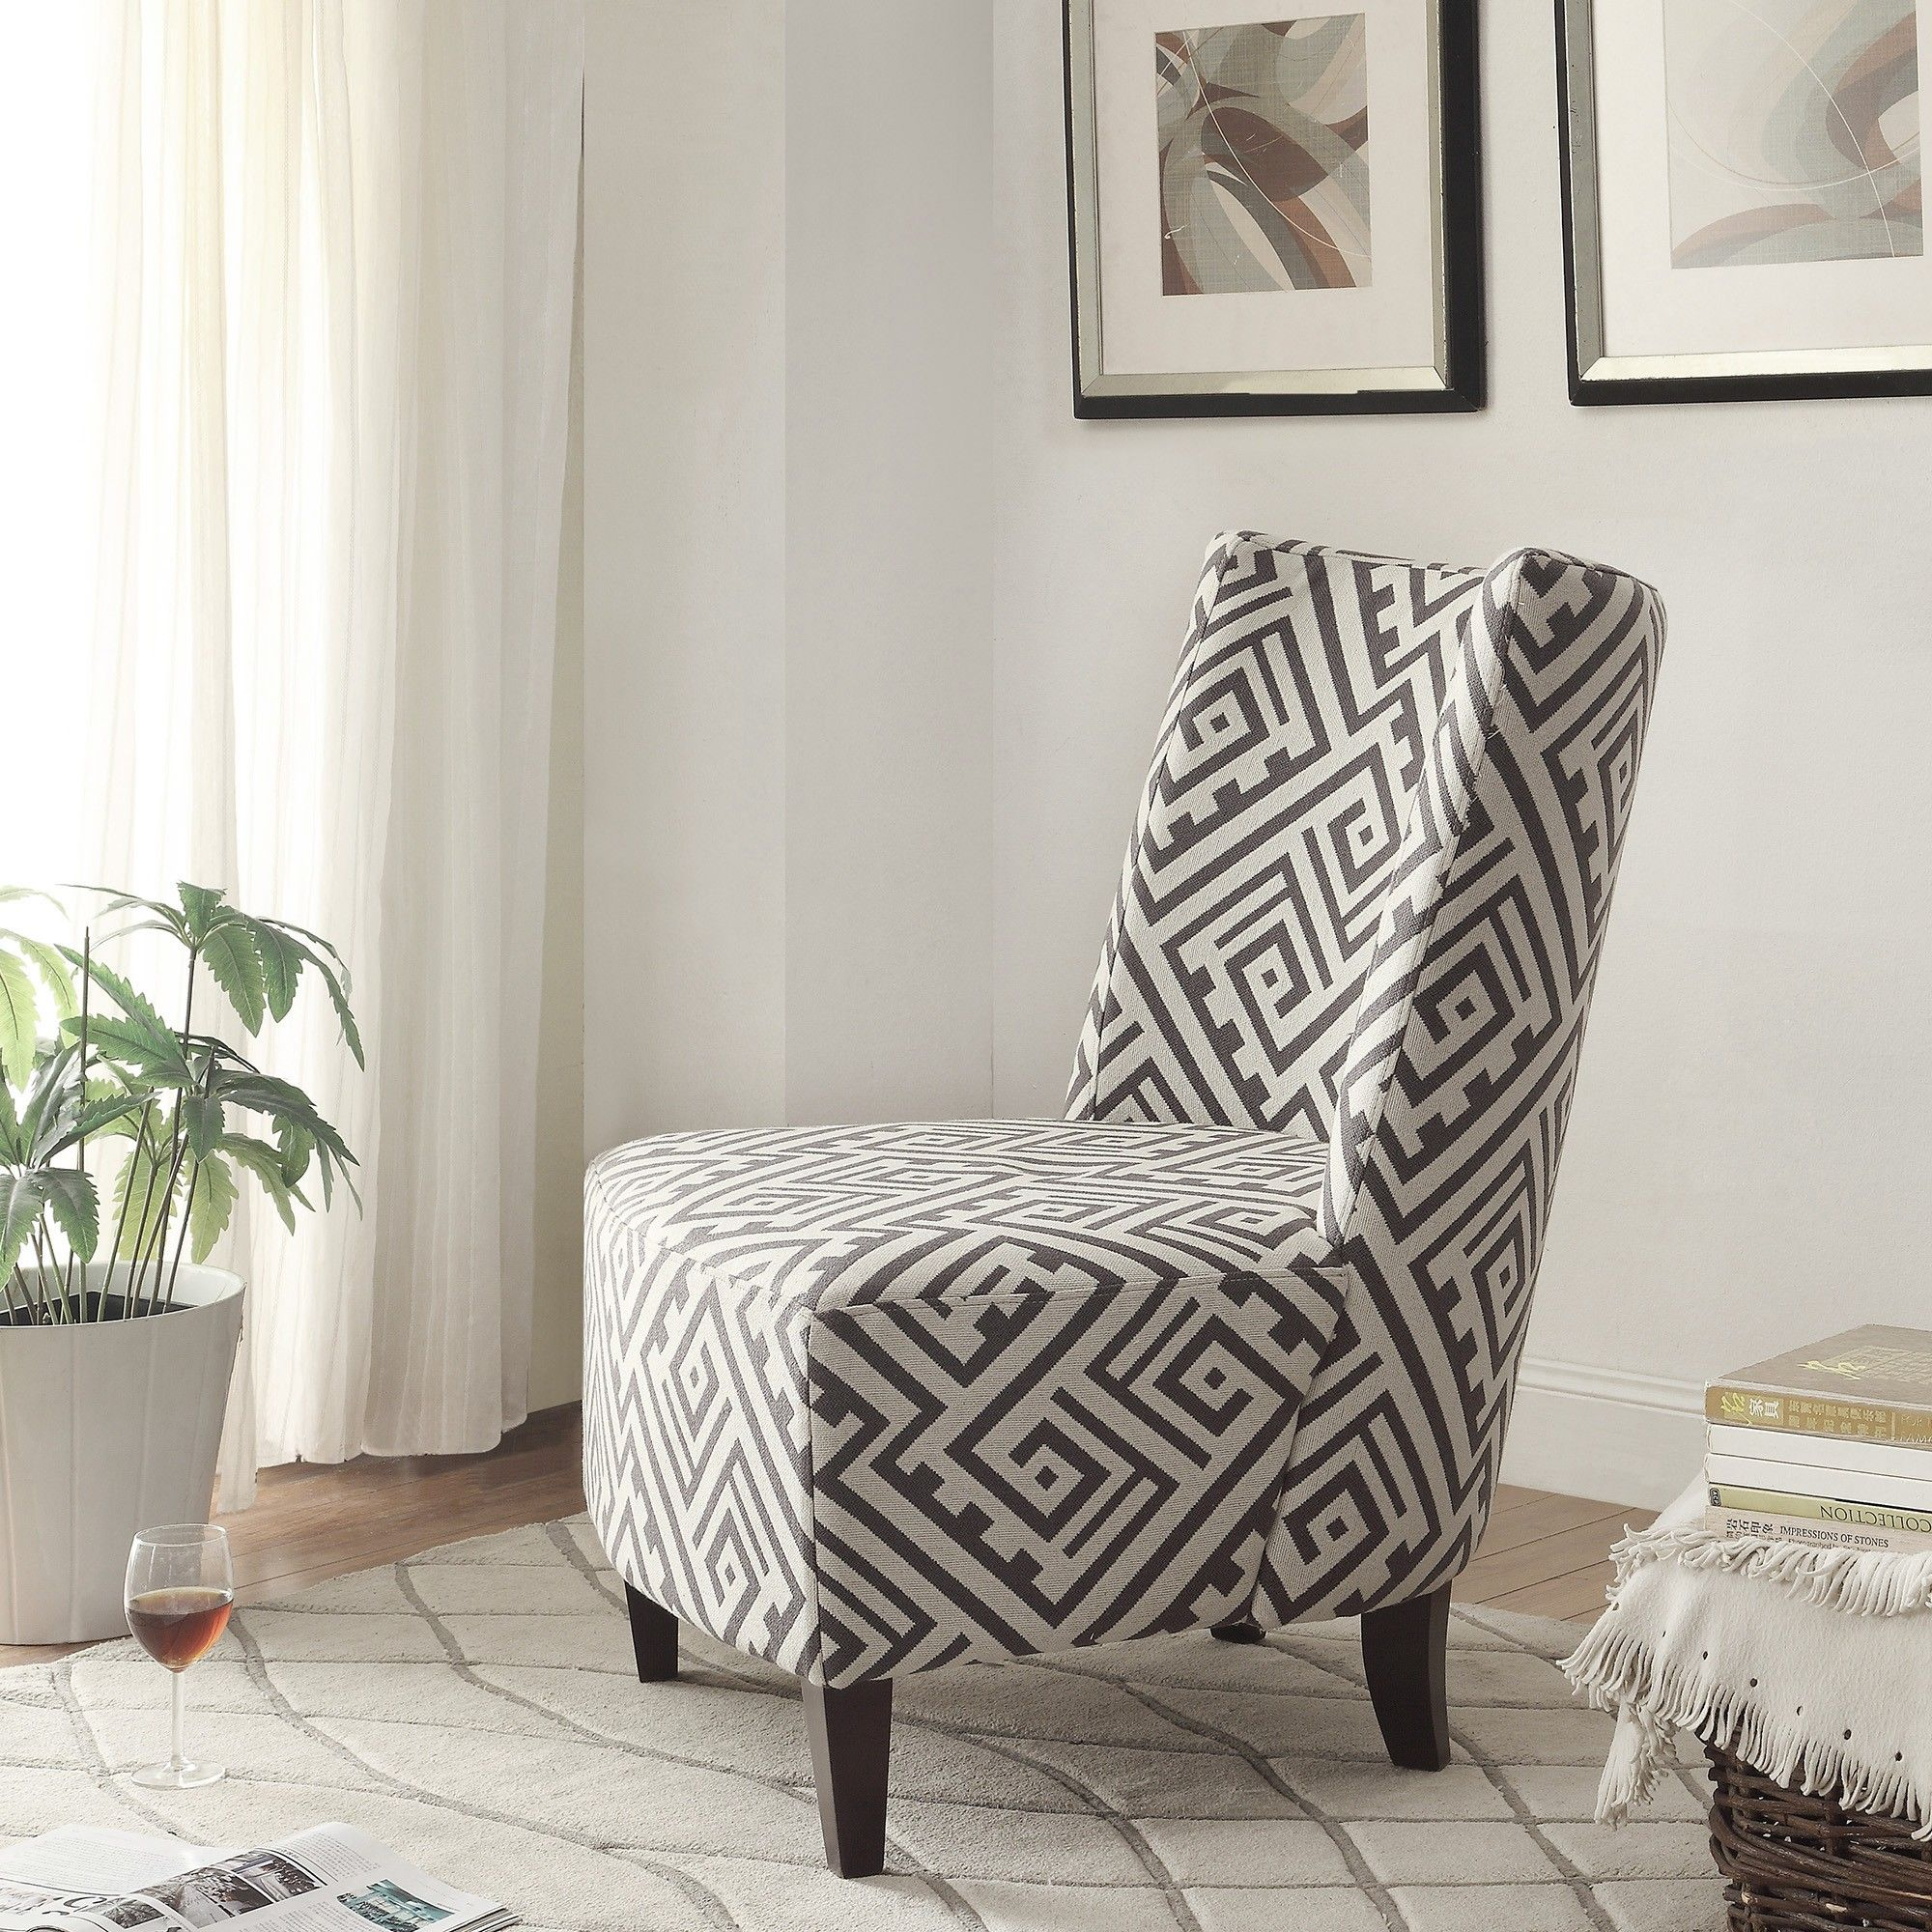 Grey Accent Chairs For Living Room   TABLE AND CHAIRS   Pinterest ...